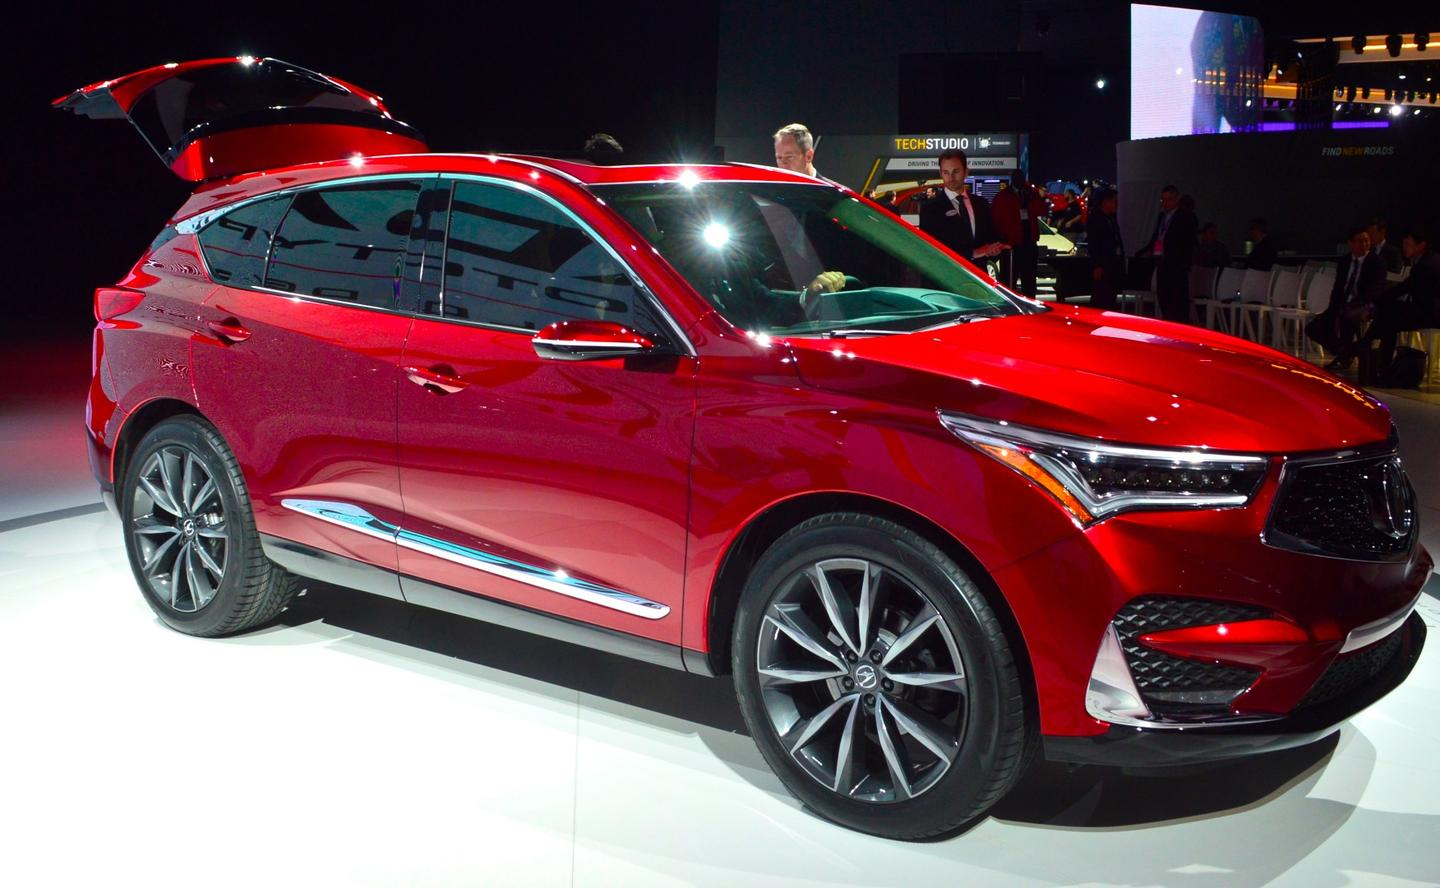 The Acura RDX is powered bya new 2.0 -iter, 16-valve DOHC direct-injected engine